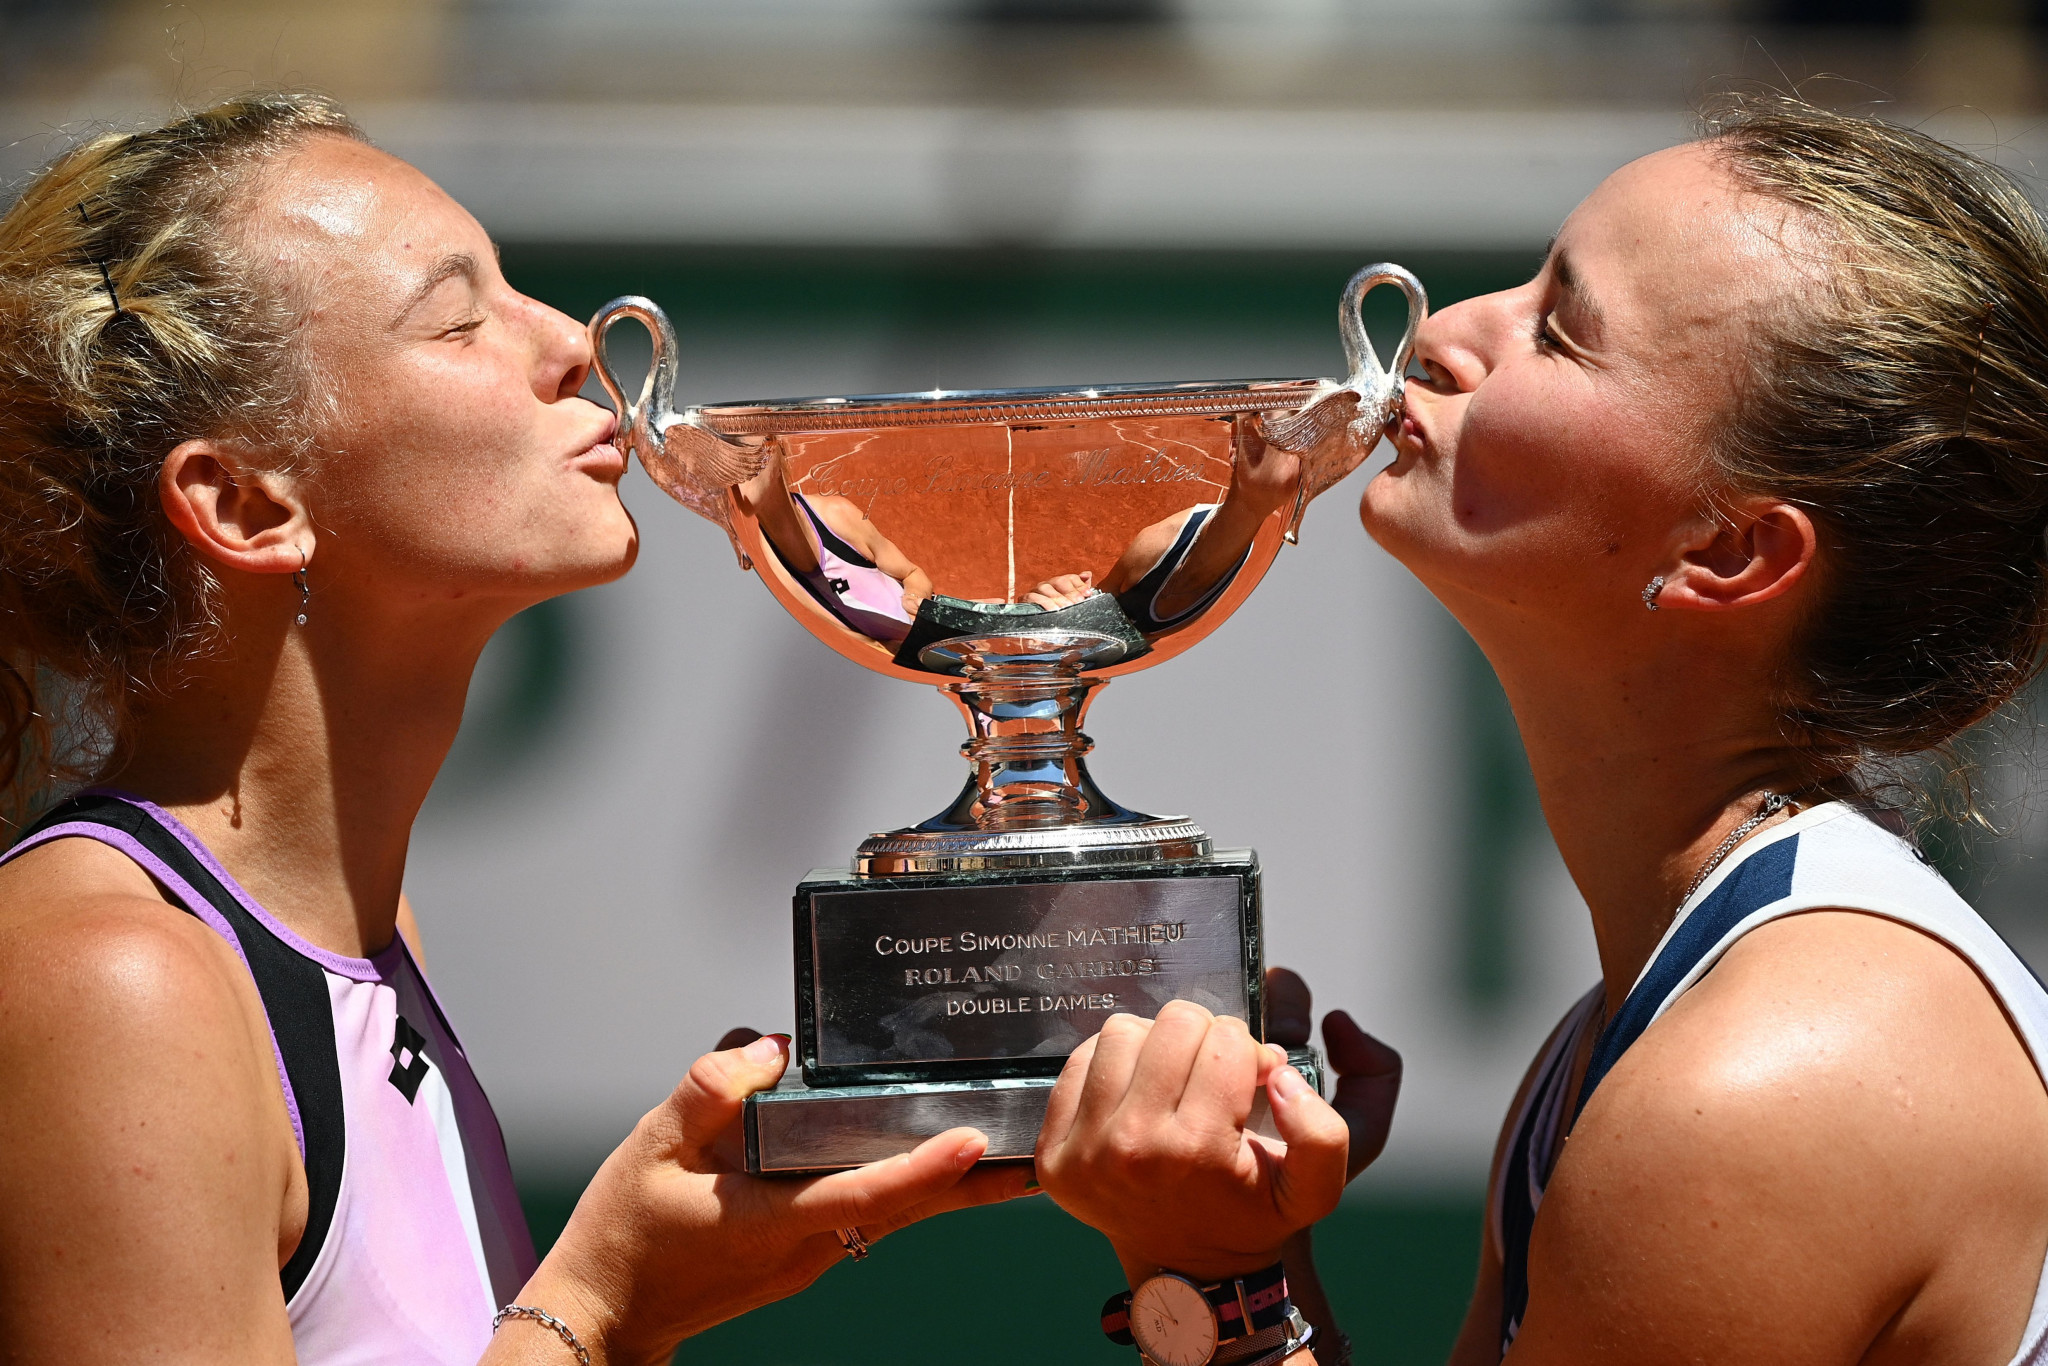 Whereas Krejčíková was unseeded yesterday, the Czech duo were seeded second and also won the French Open in 2018 ©Getty Images